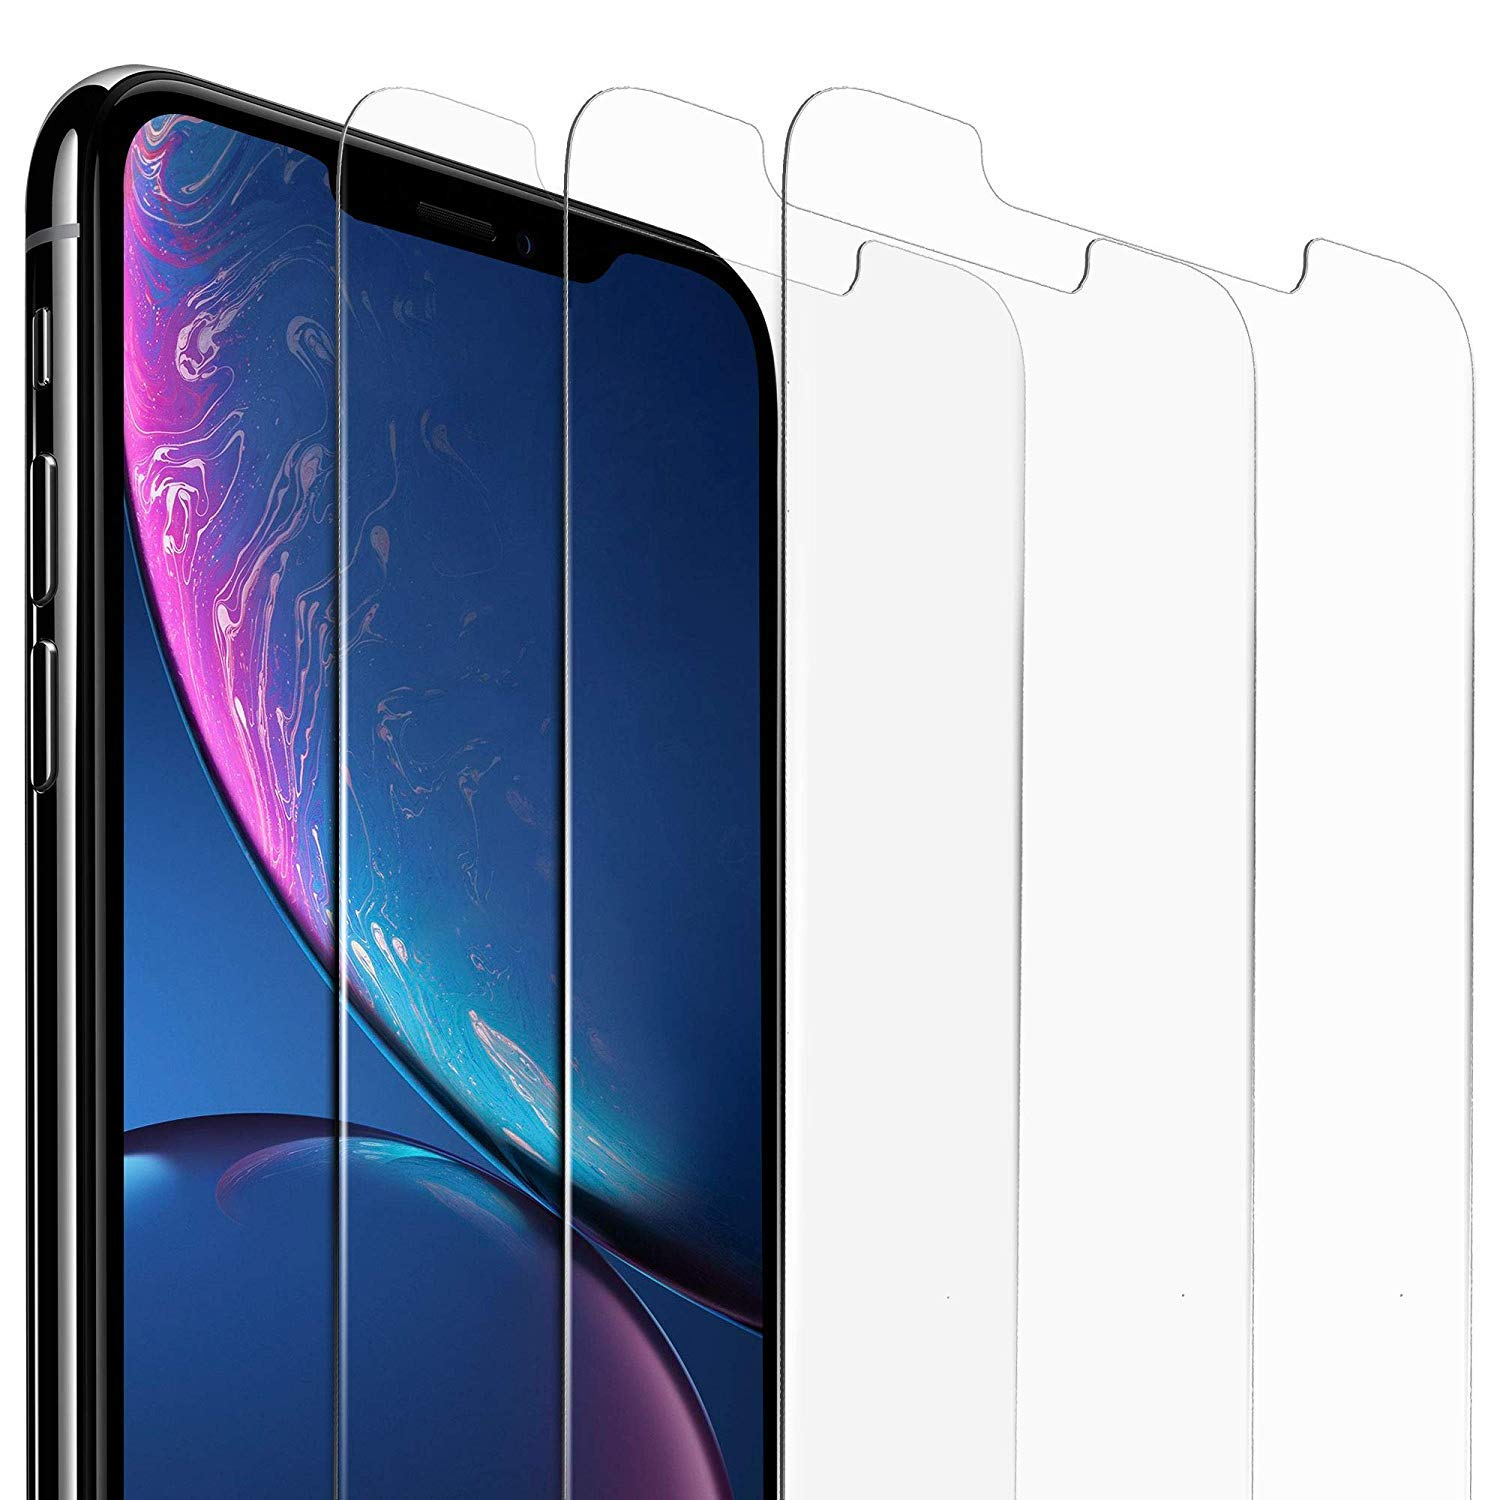 sports shoes f8486 e16a8 iPhone XR Screen Protector 6.1 inches(3 Pack, Clear) iPhone XR Tempered  Glass Screen Protector. 9H Hardness Supporting 3D Touch Best Glass